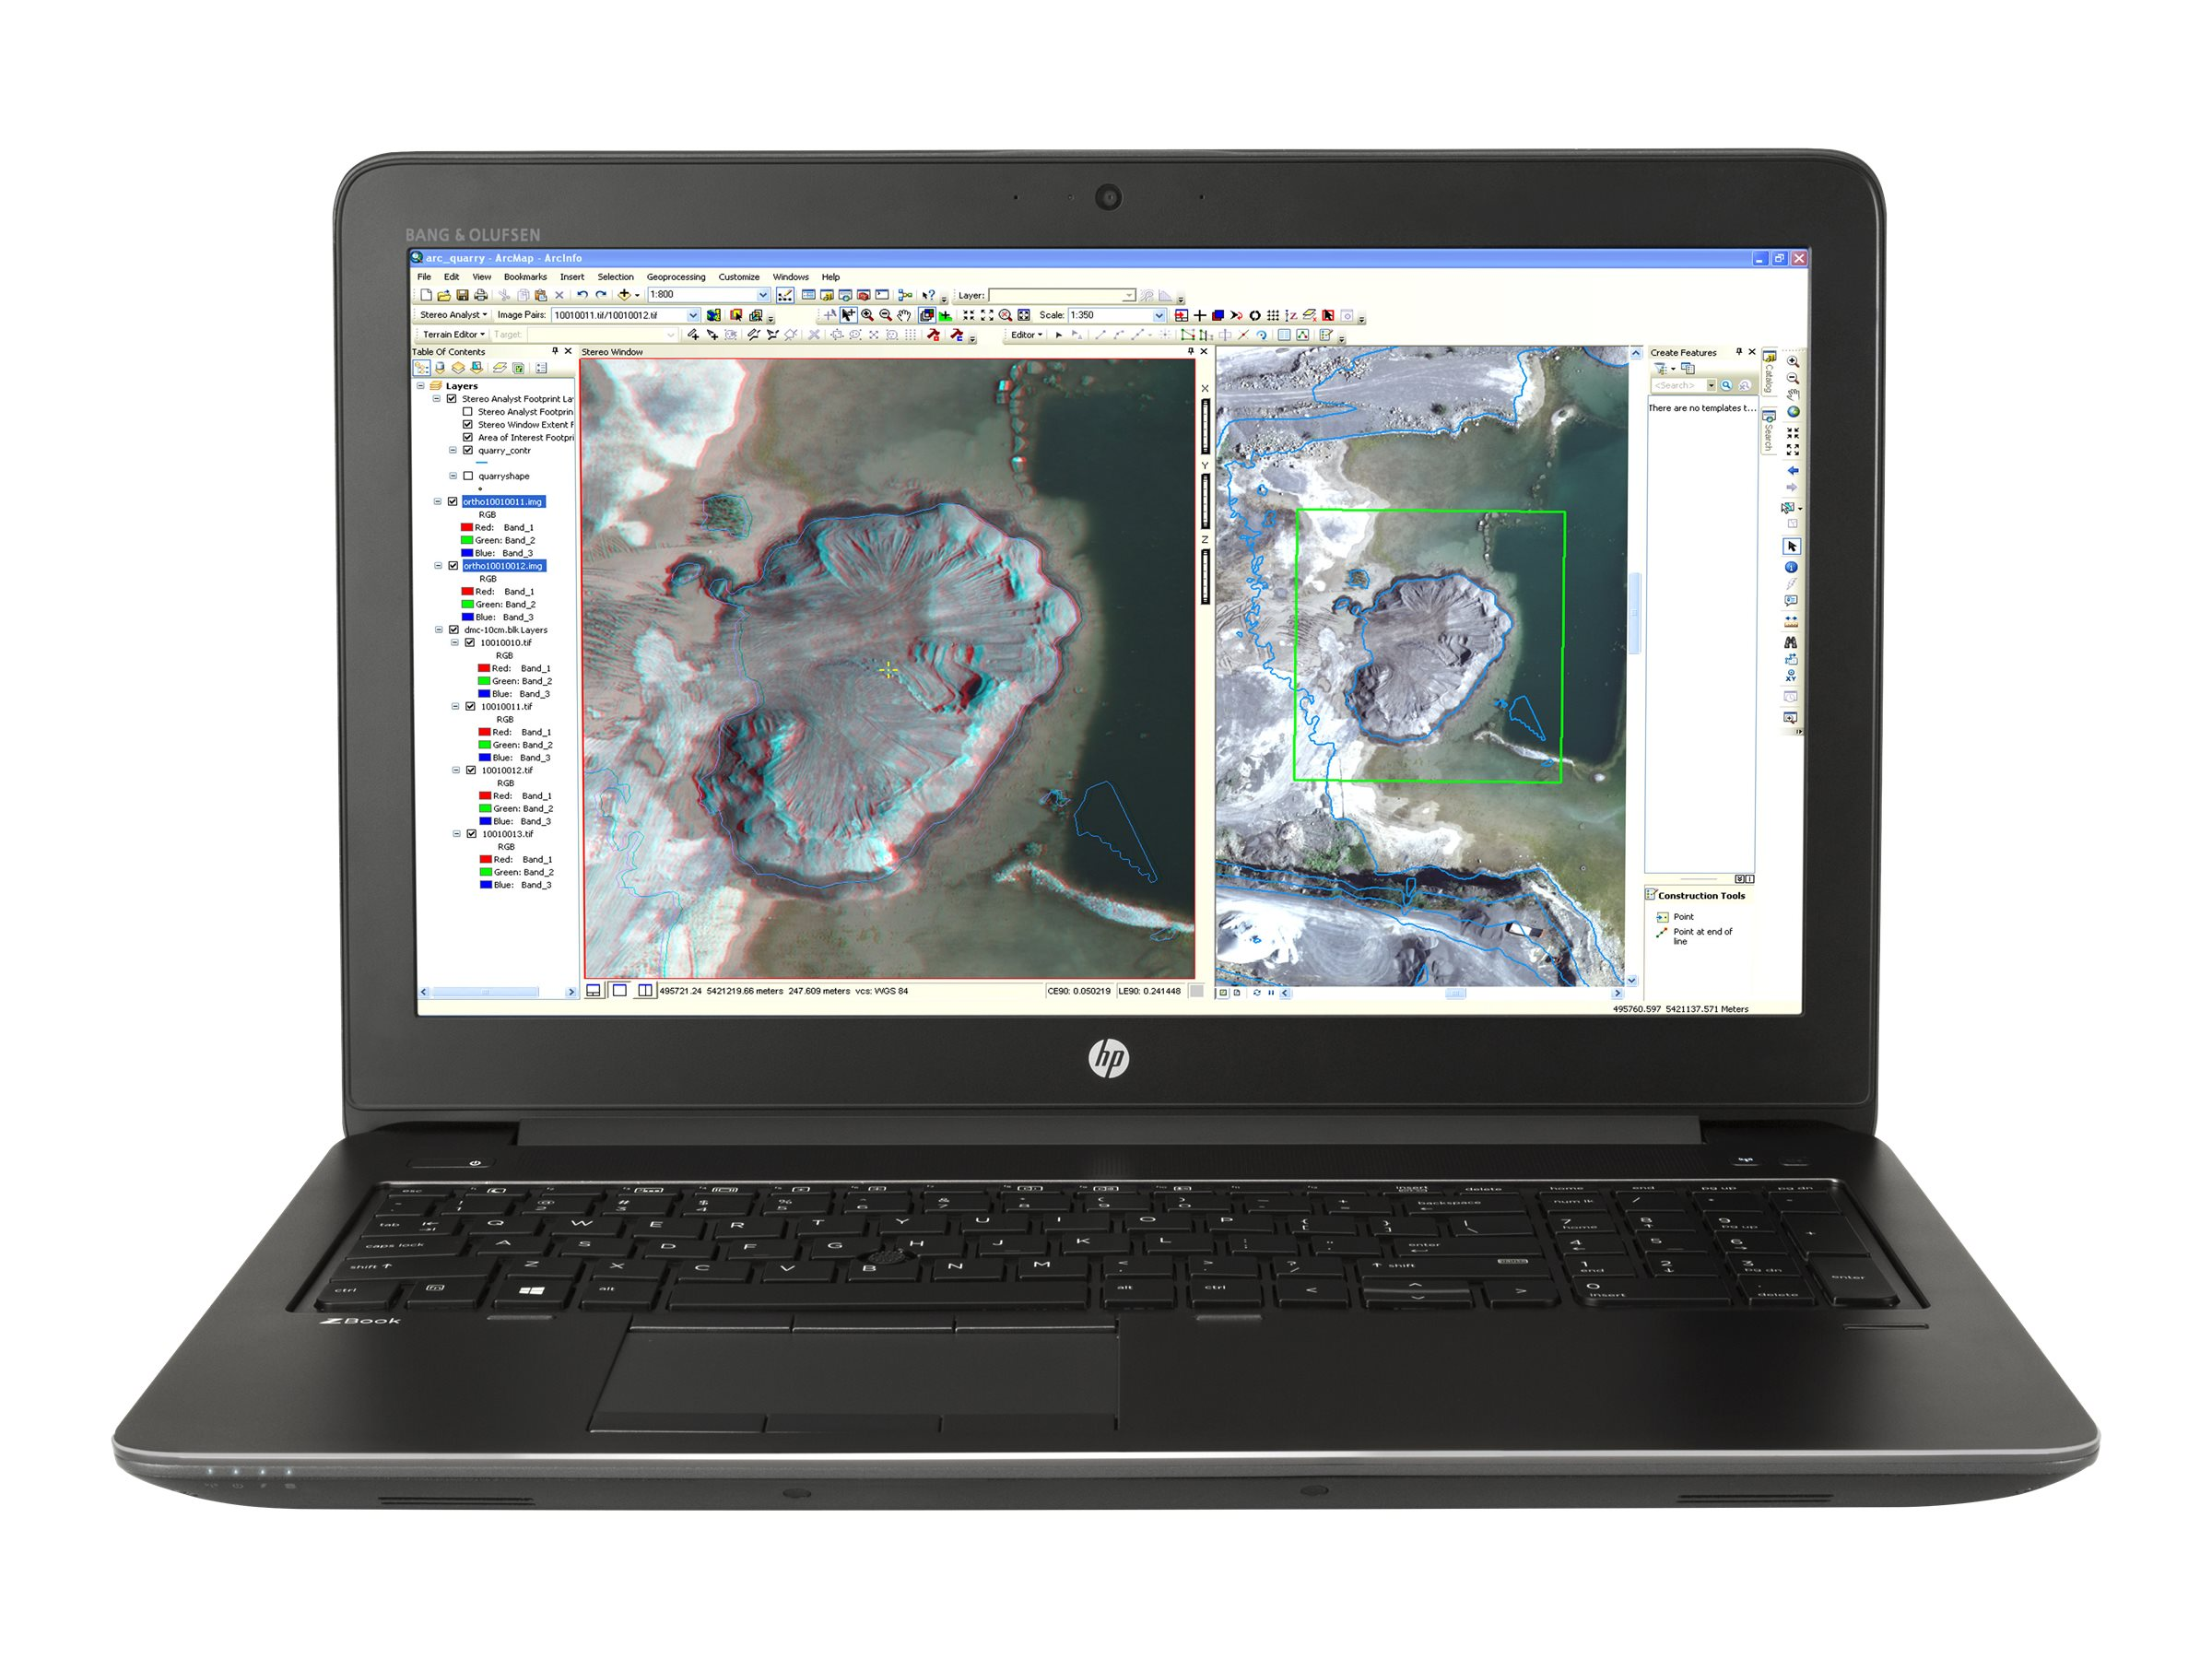 HP ZBook 15 G3 Core i7-6820HQ 2.7GHz 16GB 512GB ac BT FR WC 9C M2000M 15.6 FHD W7P64-W10P, V2W12UT#ABA